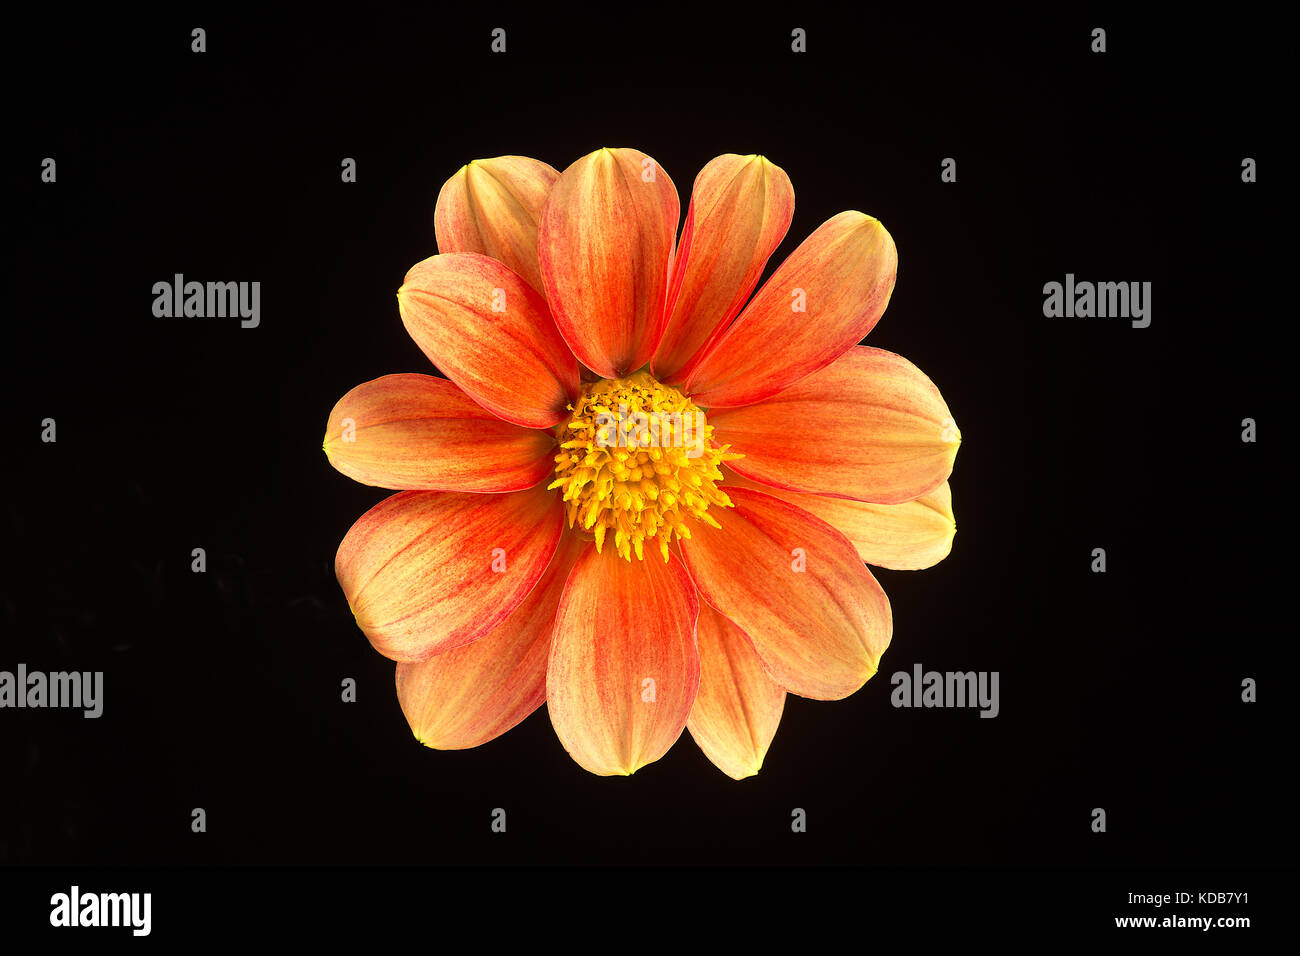 A single flower of a beautiful dahlia isolated against a black background. - Stock Image